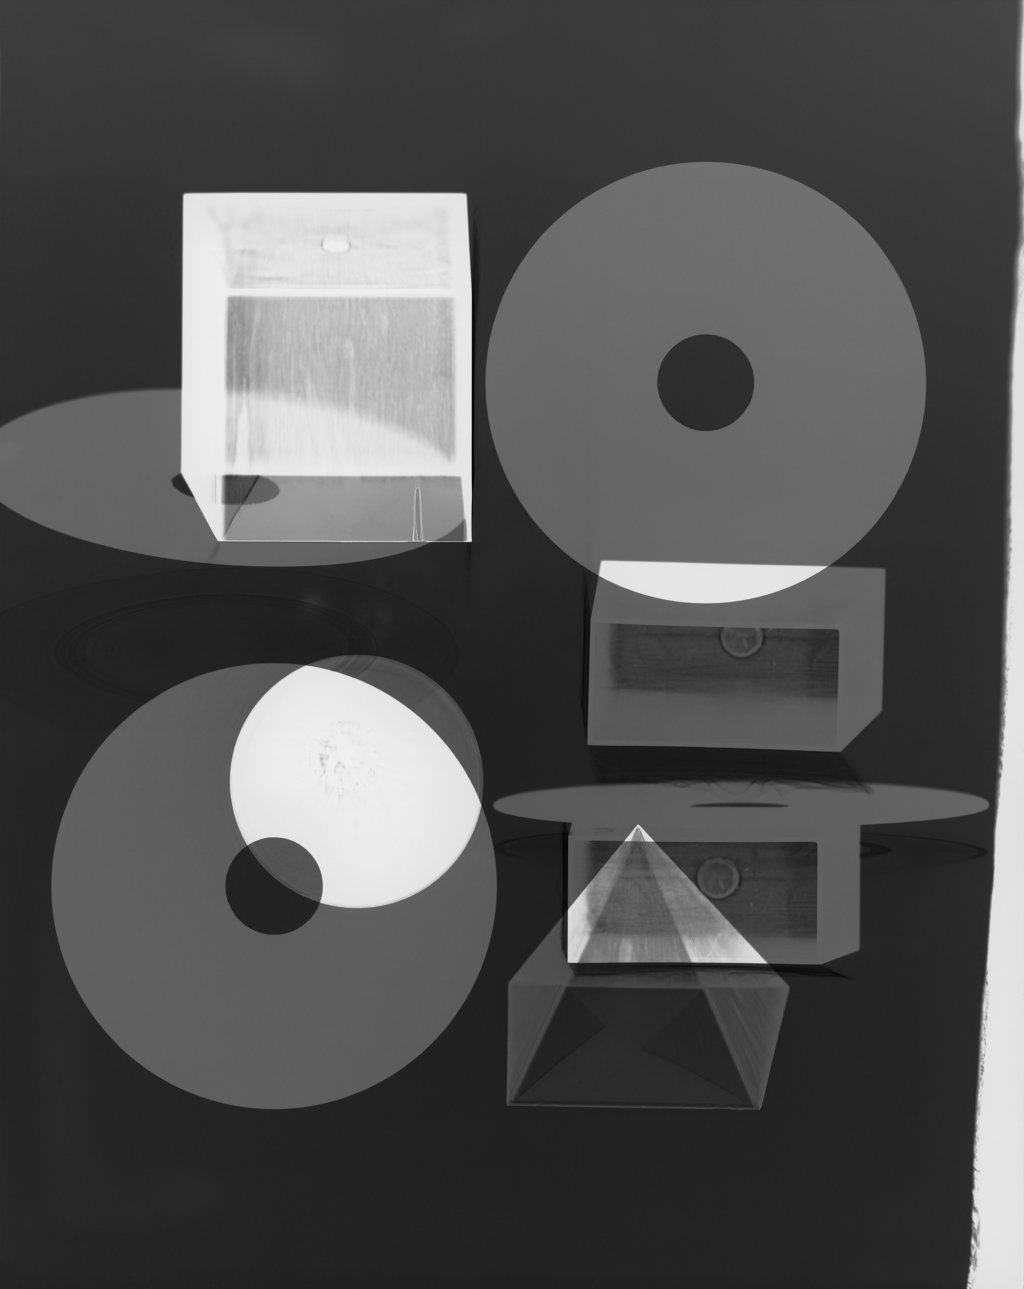 Doug Fogelson Forms and Records No. 11, 2014 Fotogramm, Silbergelatinepapier Courtesy Doug Fogelson © Doug Fogelson